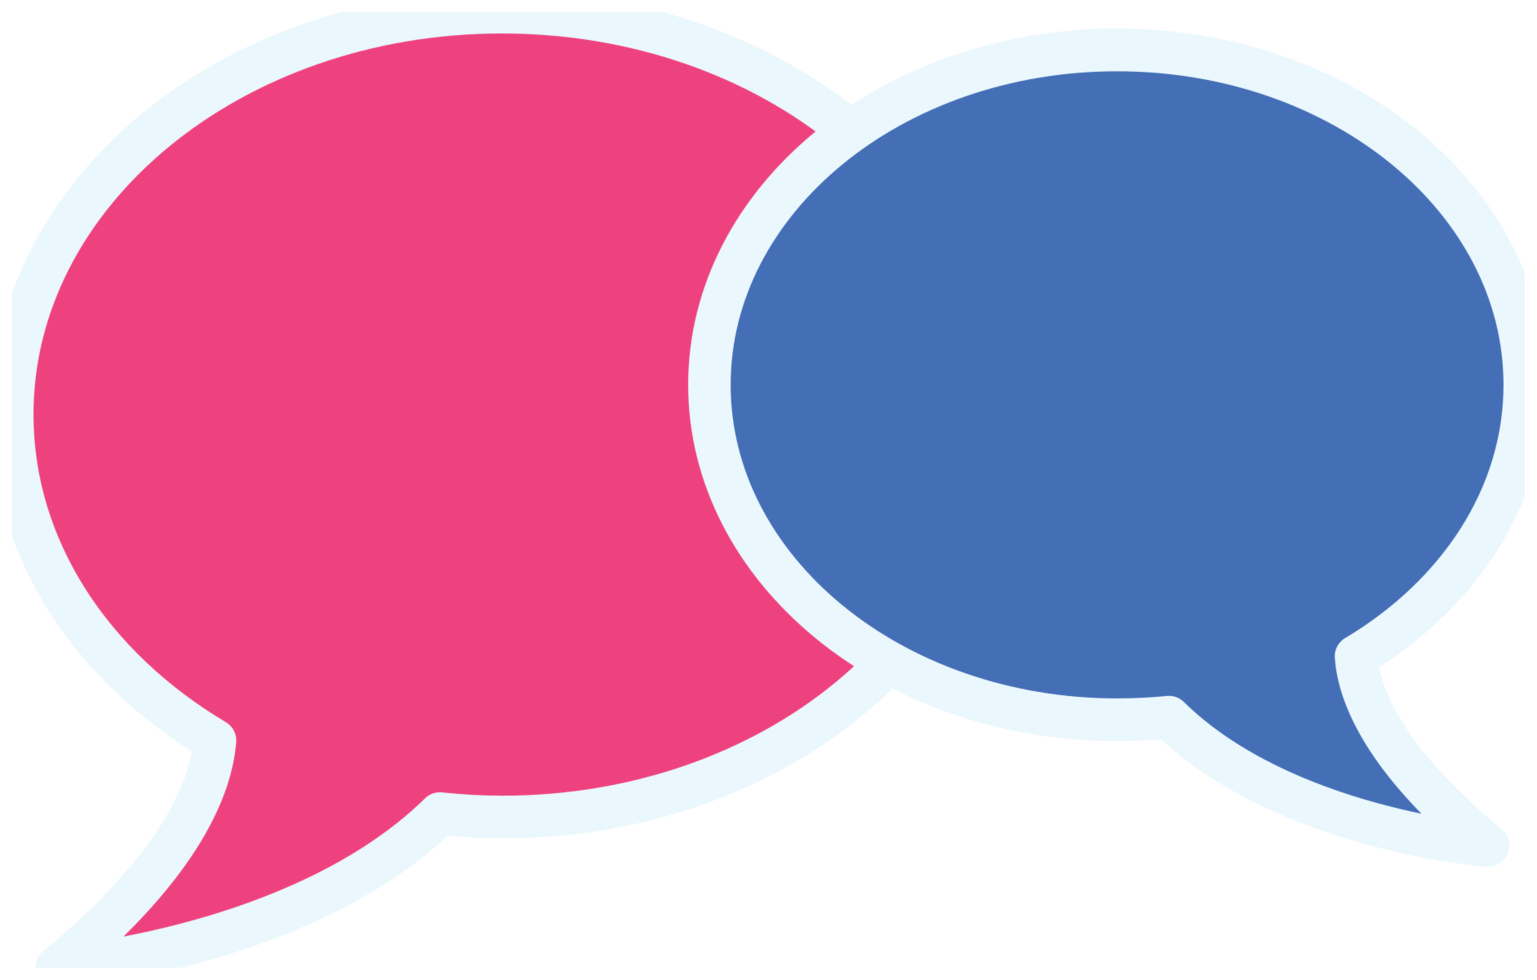 Free Speech bubble PNG with Transparent Background